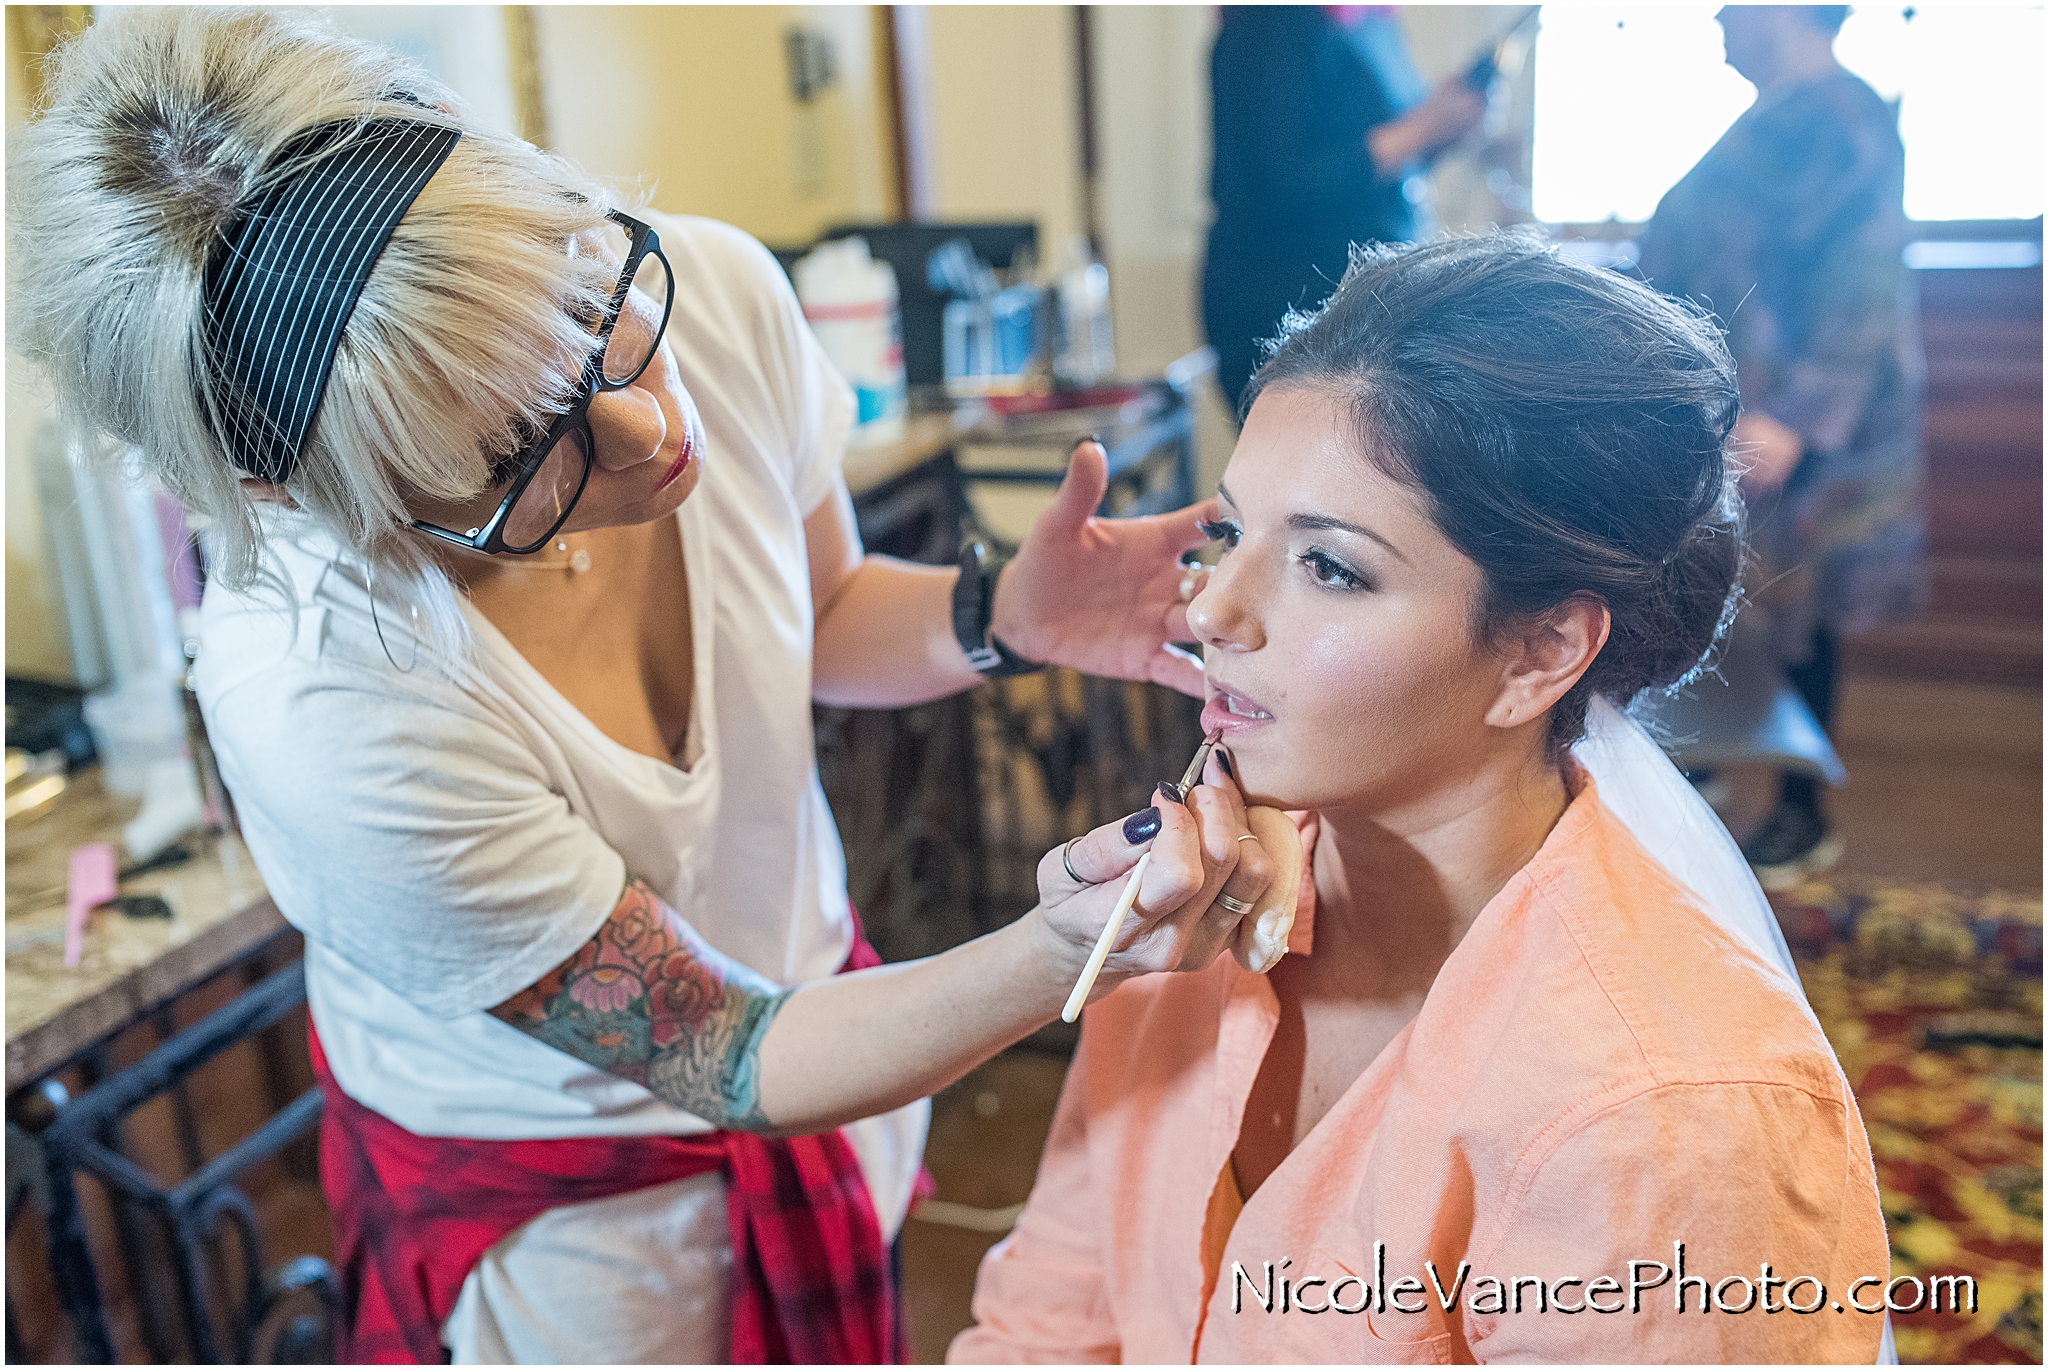 Finishing touches are being applied; hair and makeup was done by Jennifer Saunders Bridal.